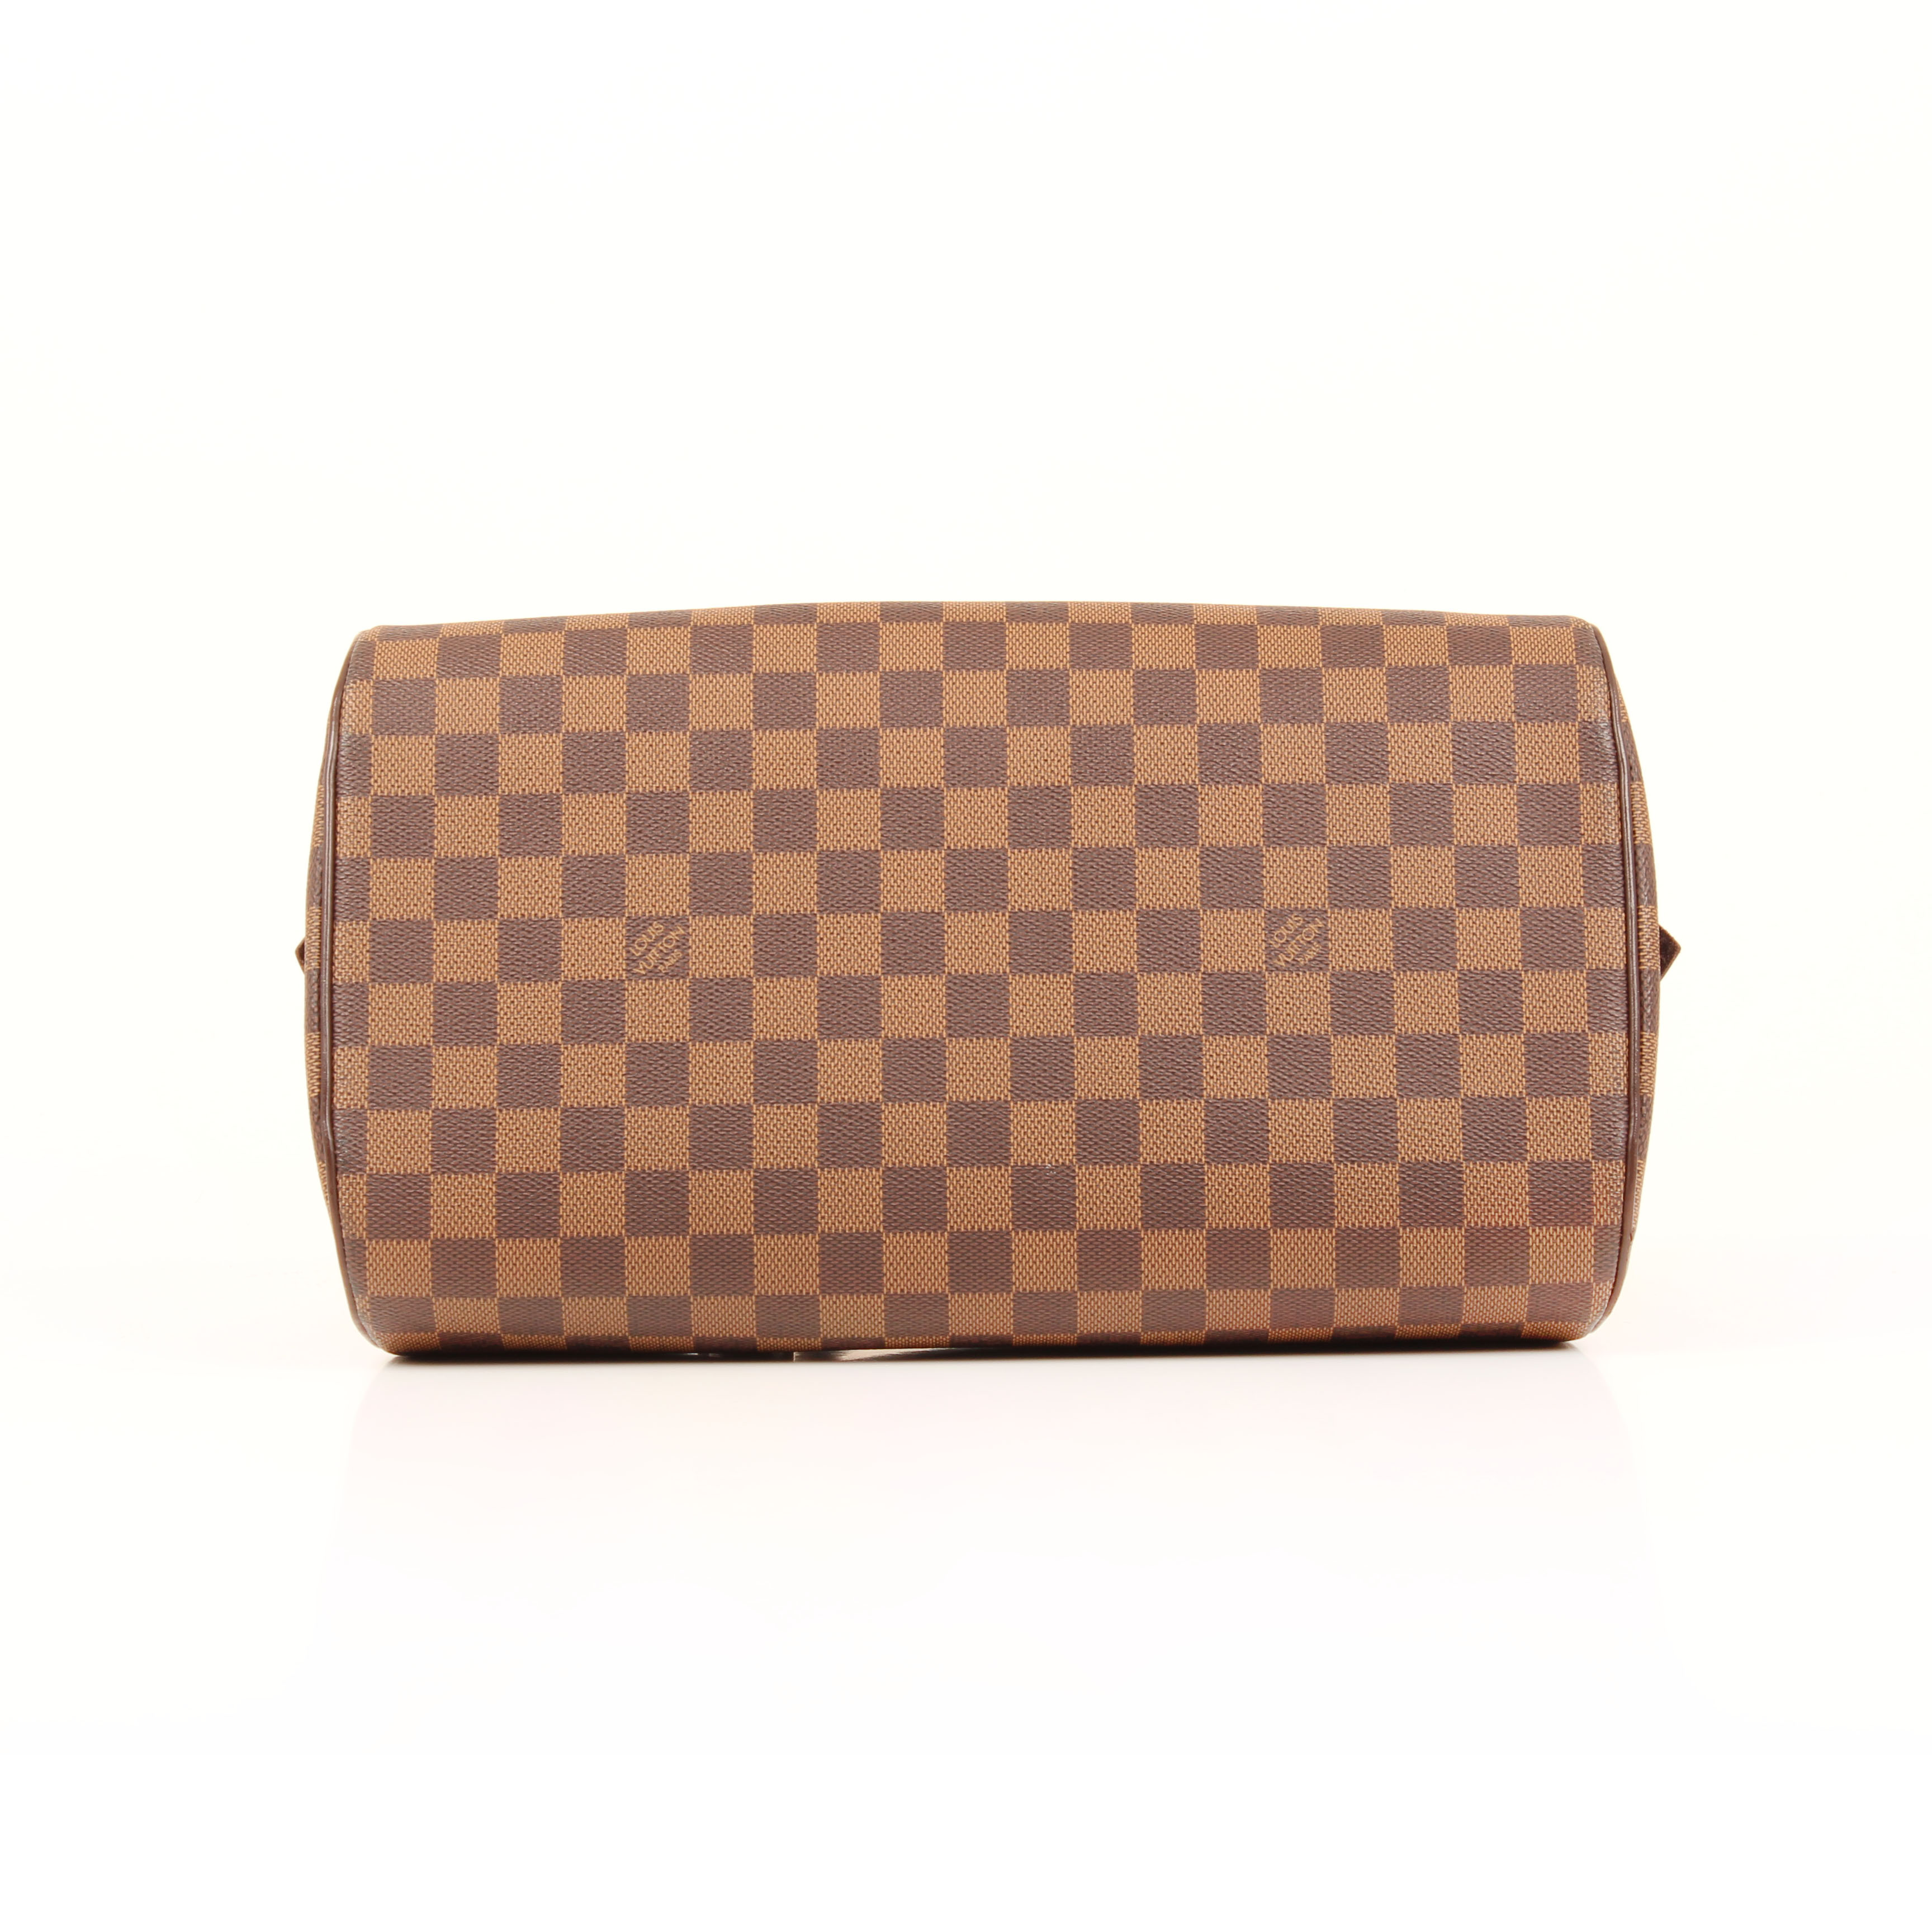 handbag louis vuitton ribera damier ebene bottom